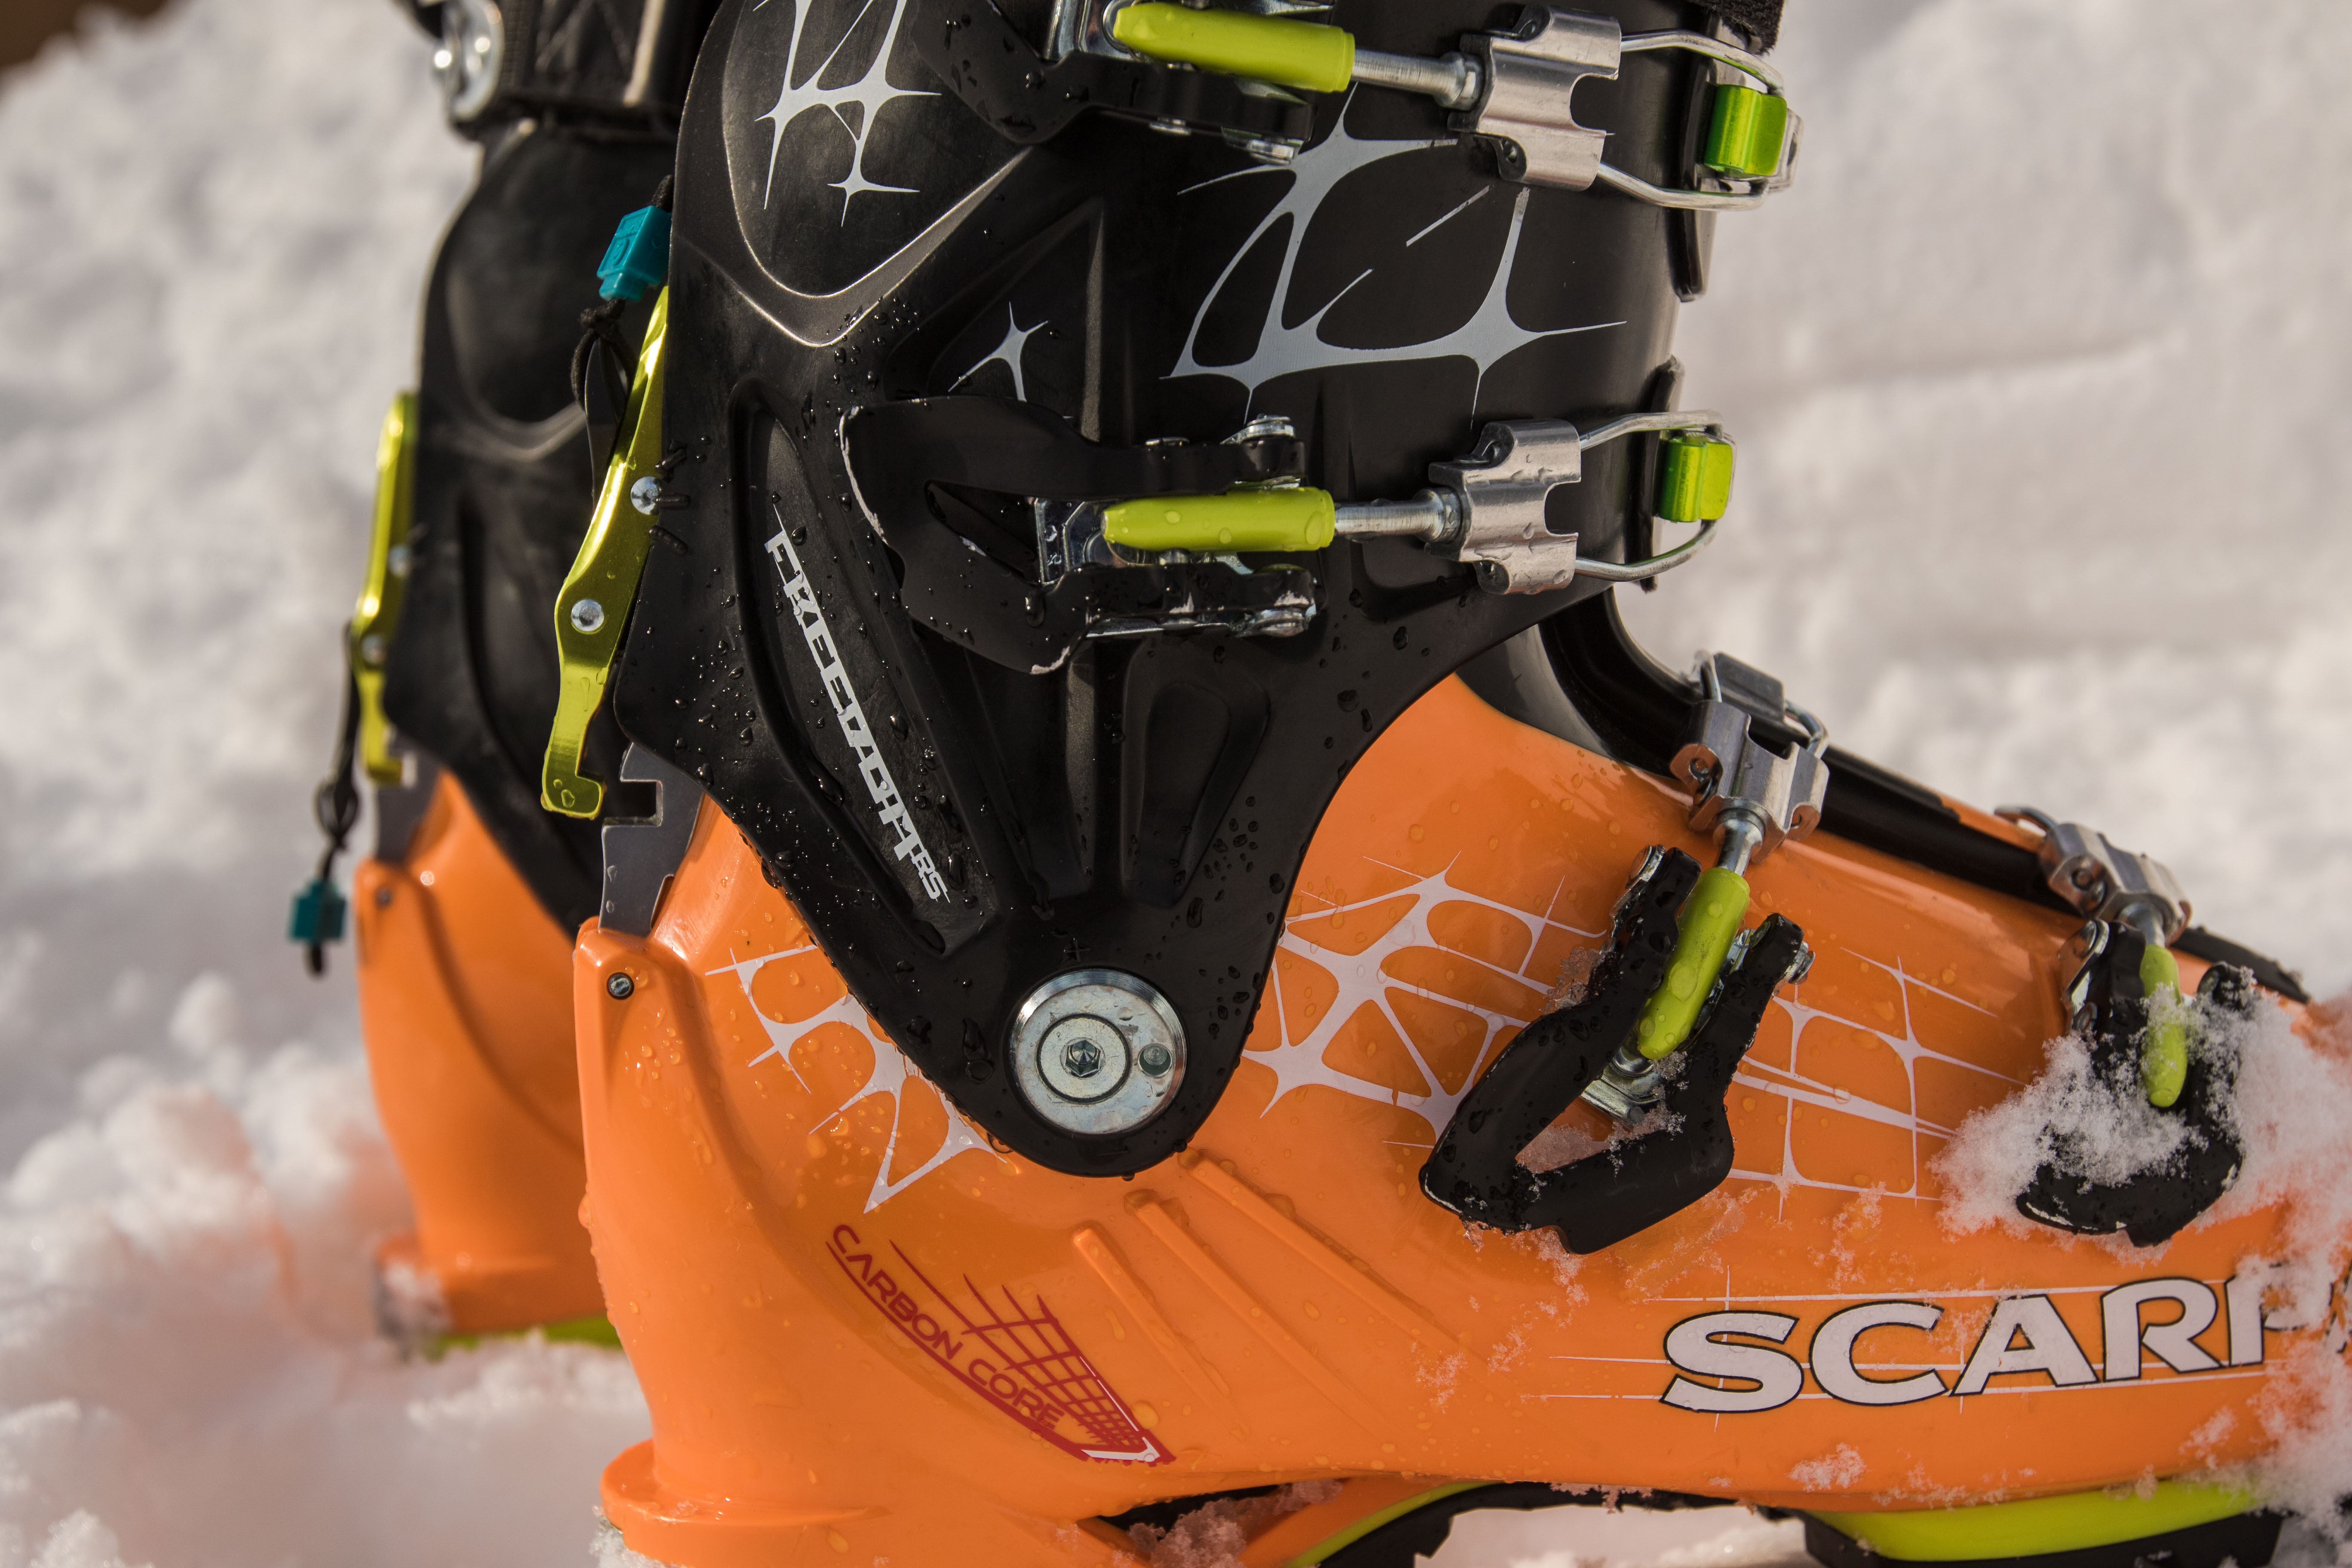 scarpa-fs-130-freeride-boots-2-of-10